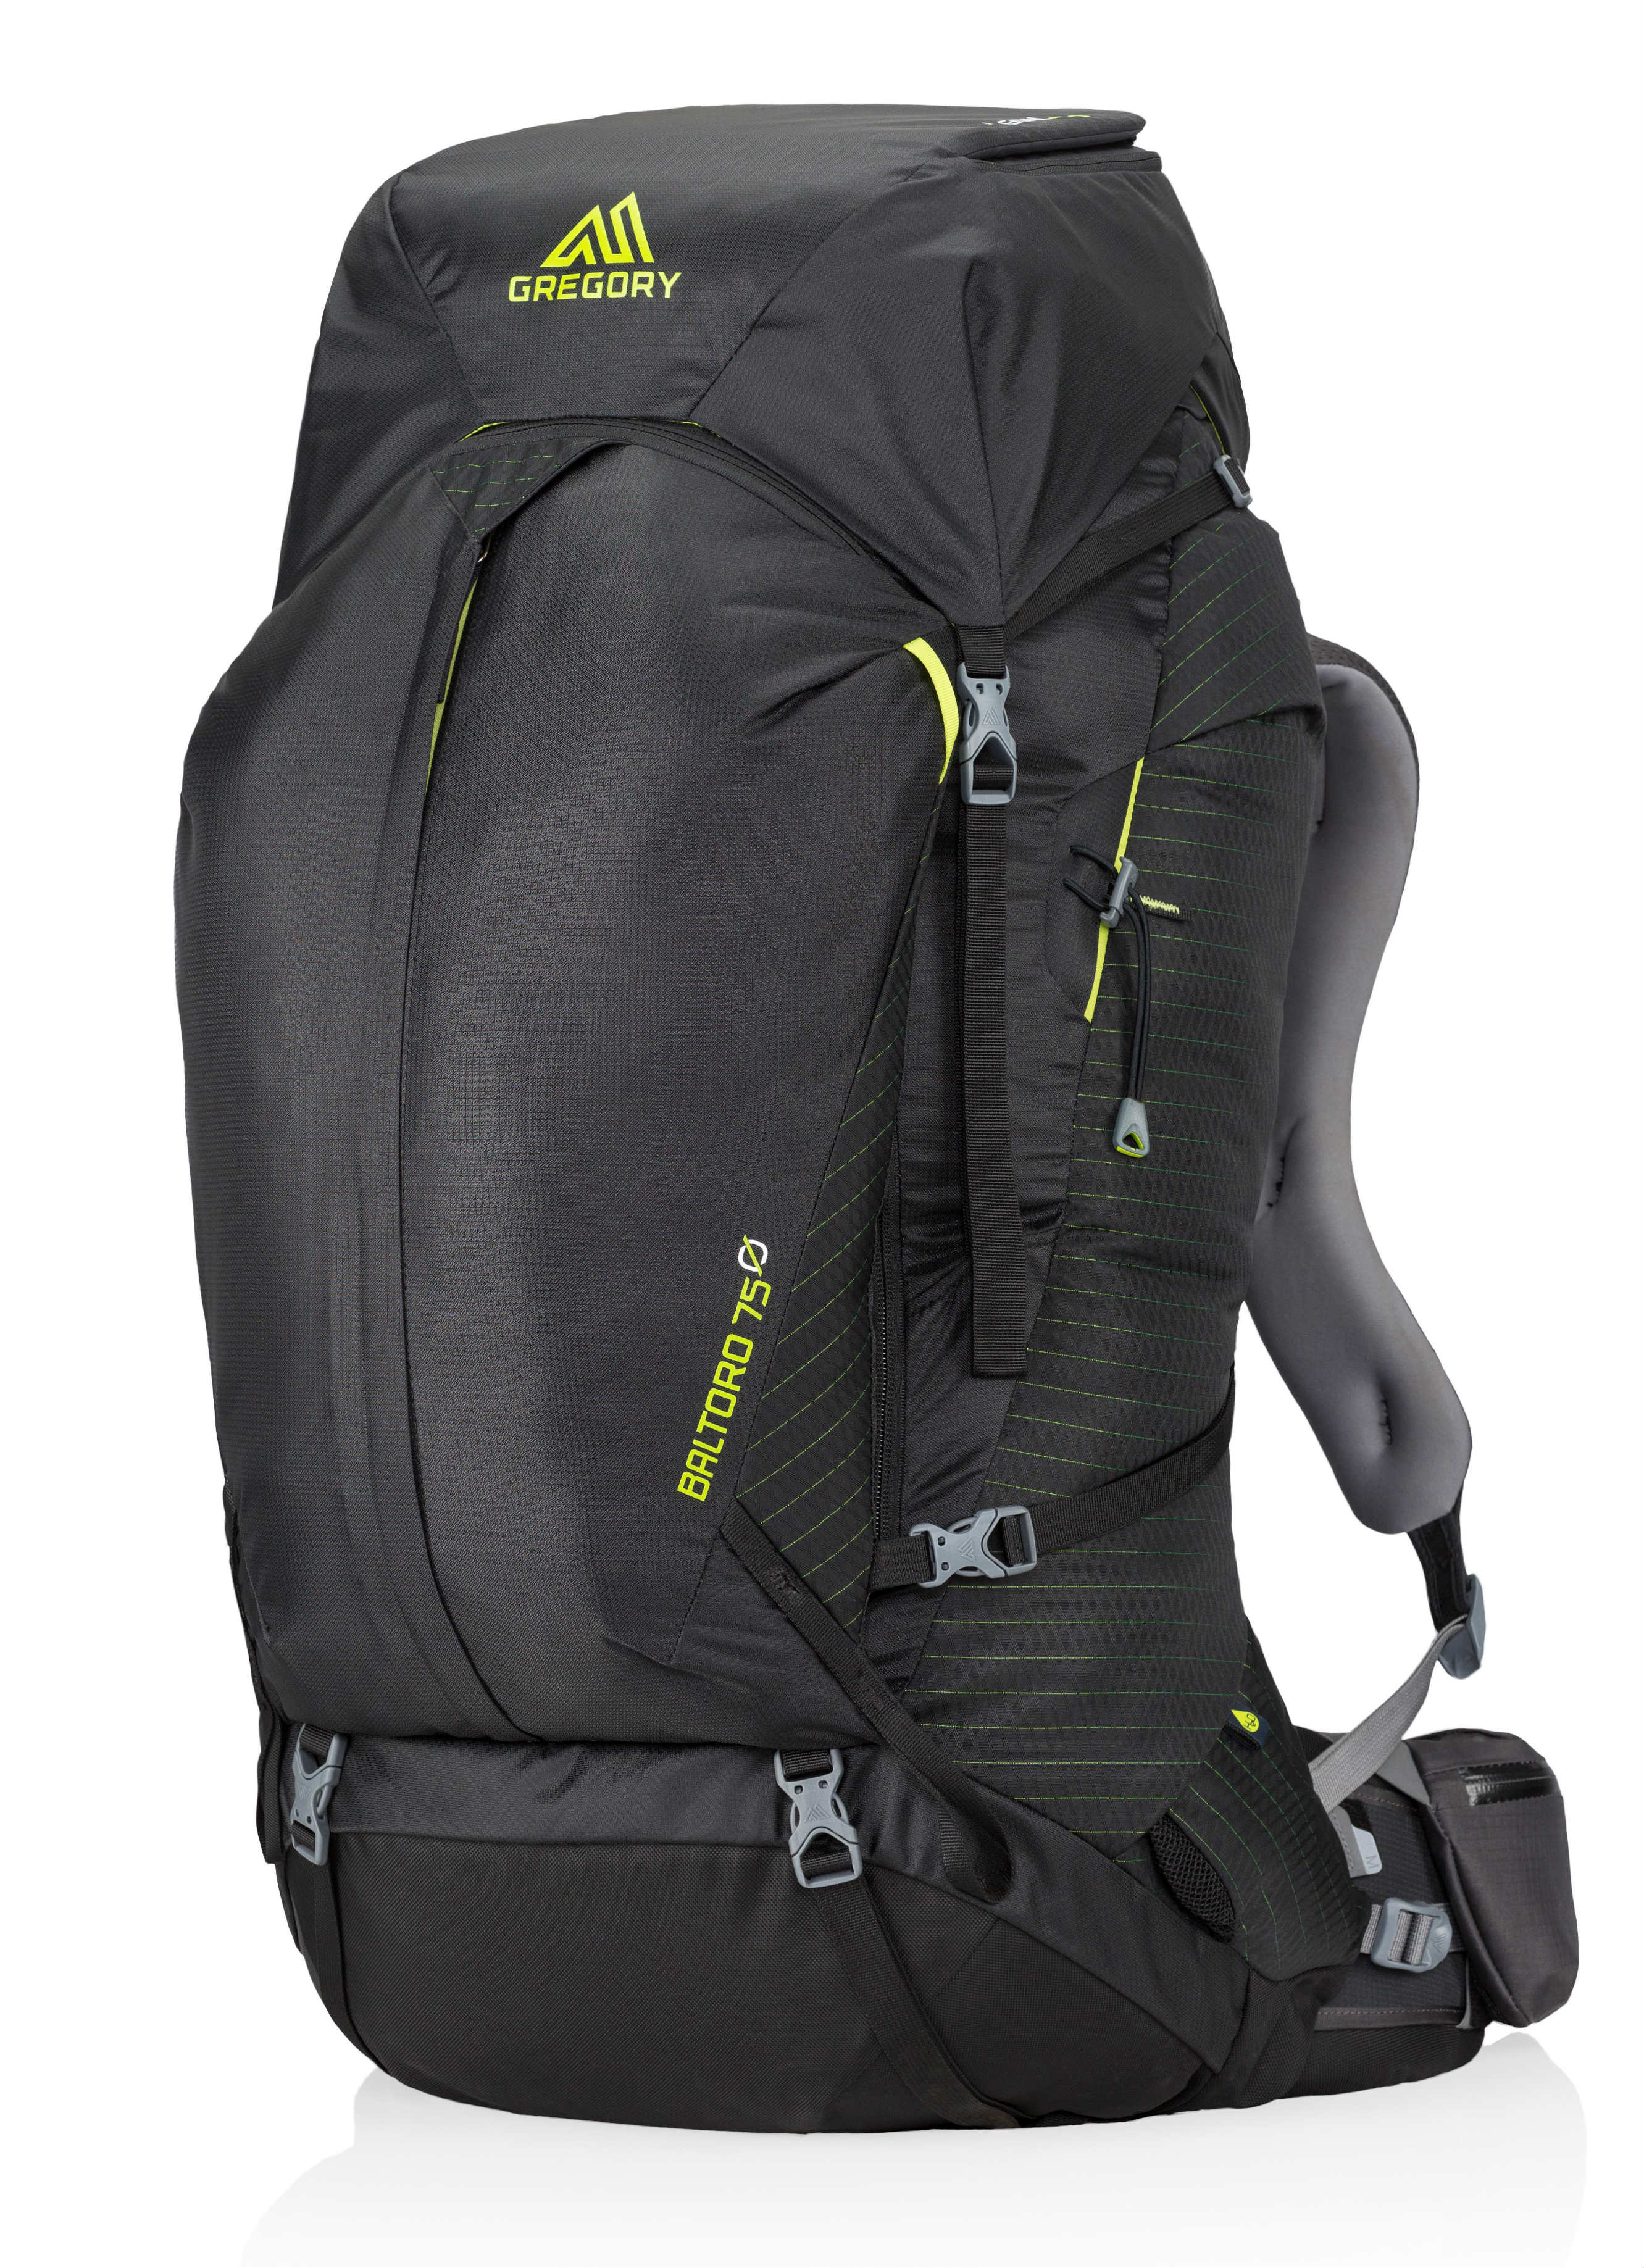 photo: Gregory Baltoro 75 GZ expedition pack (70l+)